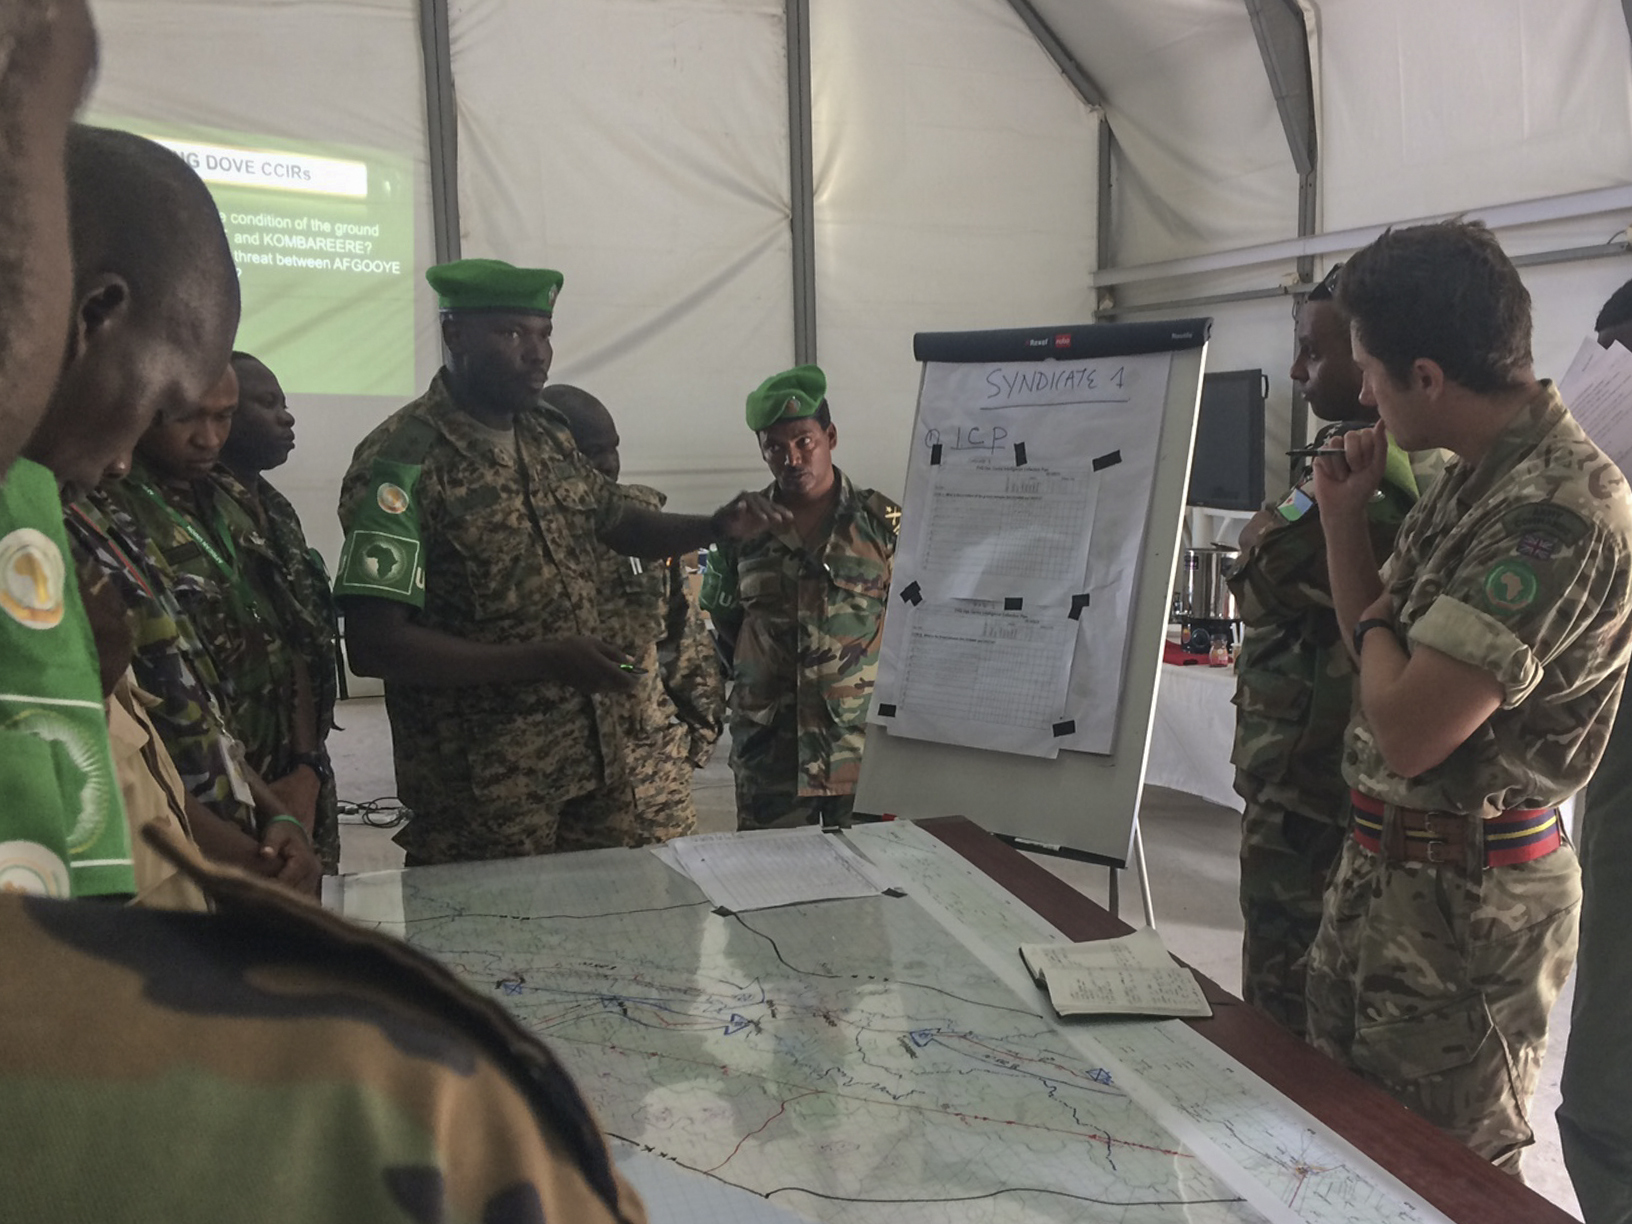 British Army Capt. Doug Collett (far right), U.K. Mission Support Team member, gives instruction during an intelligence, surveillance and reconnaissance (ISR) course in Mogadishu, Somalia, Aug. 7, 2017. Soldiers from five countries supporting African Union Mission in Somalia are taking the British-led ISR course to improve their intelligence-gathering capabilities in the fight against violent extremist organizations like al-Shabaab in East Africa. (Photo courtesy U.S. Air Force Capt. Brian Hurt/Released)